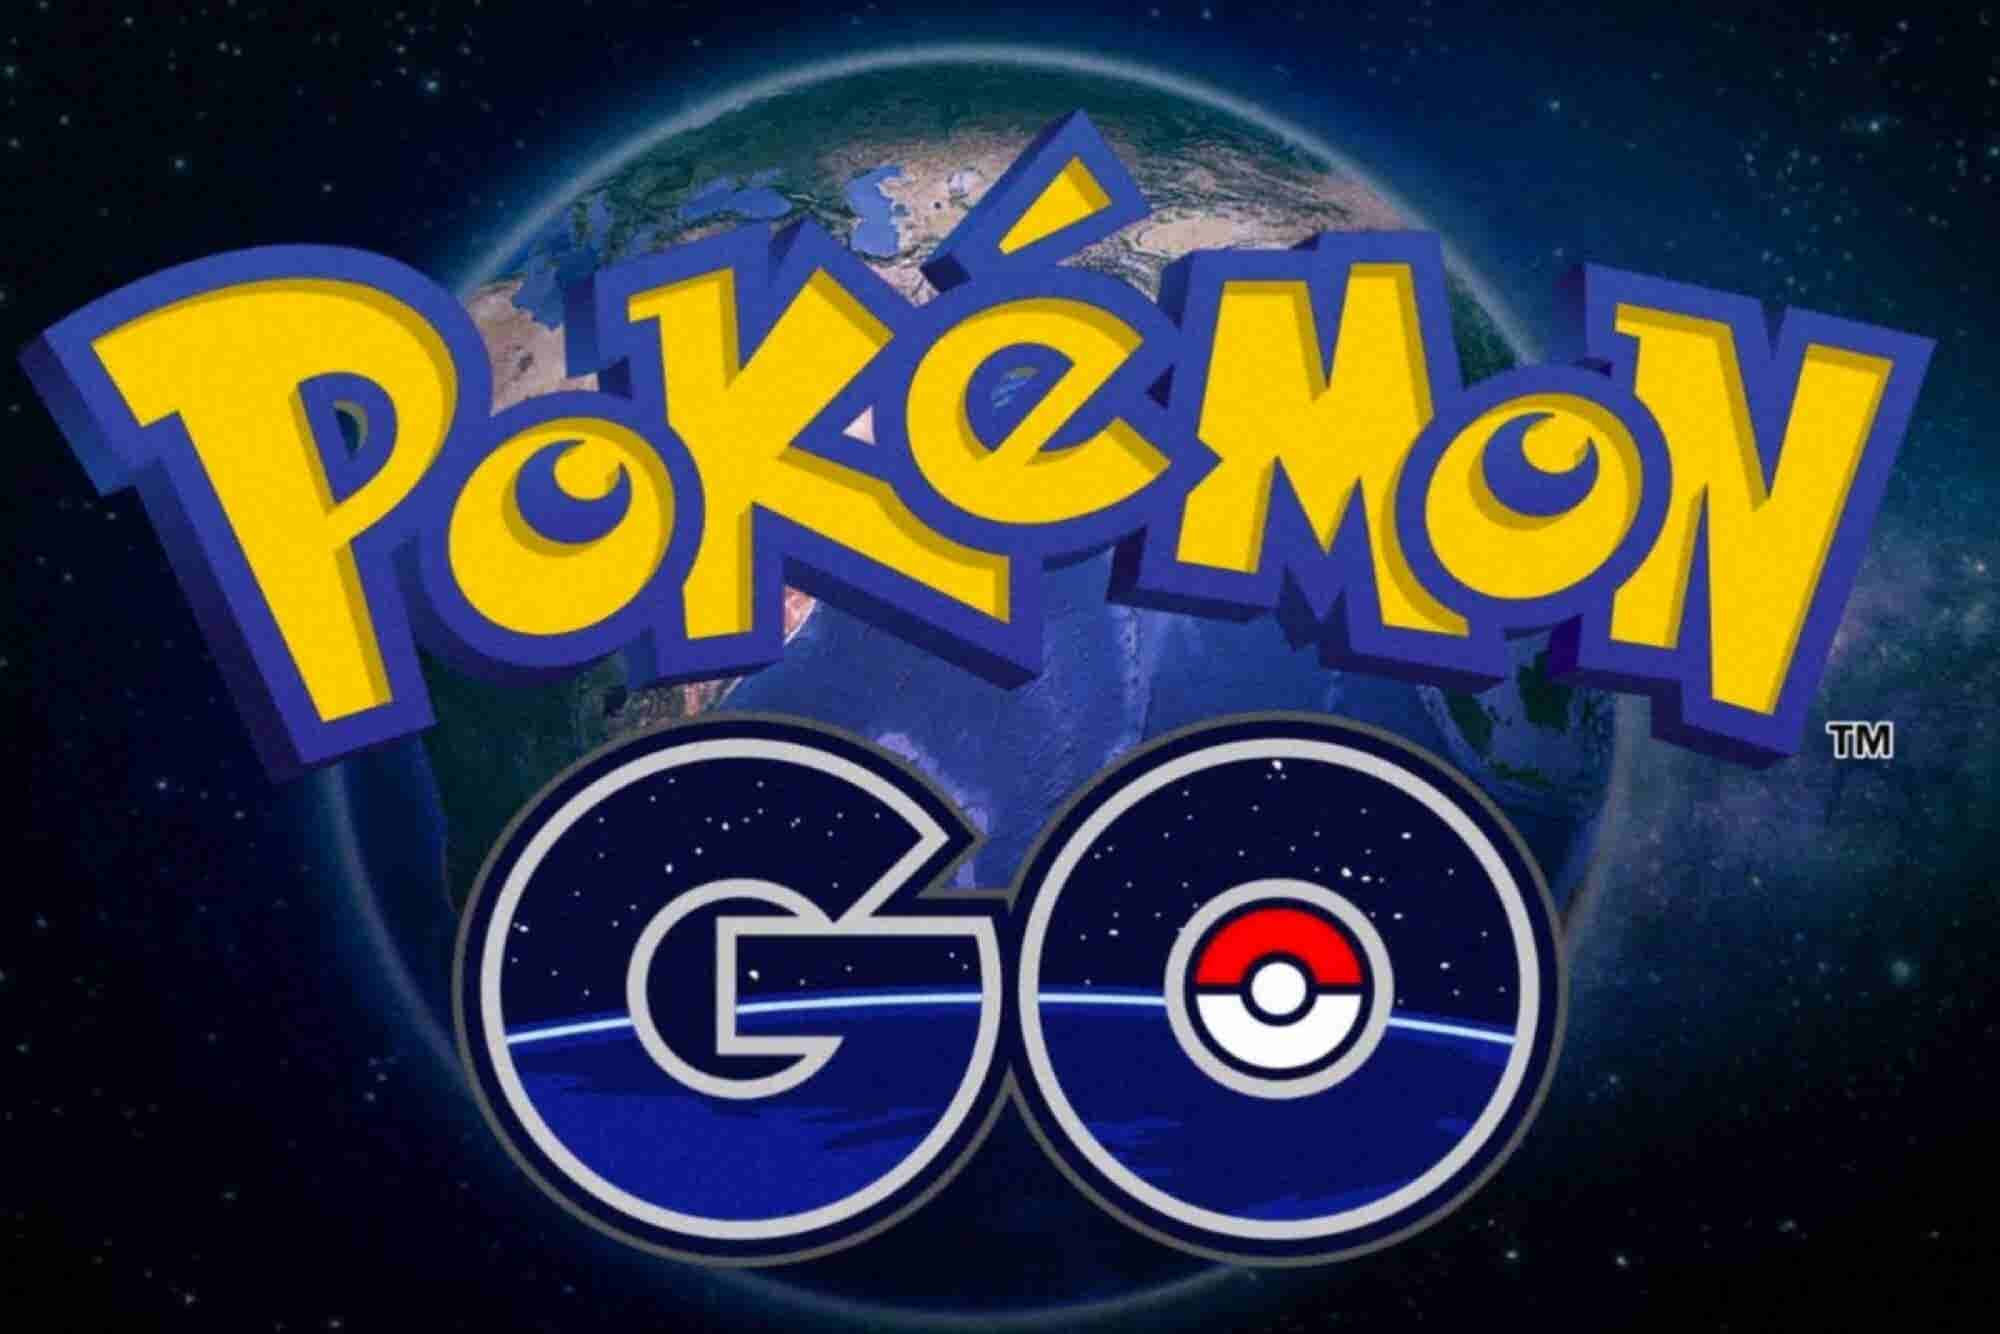 Well, That Was Fast: One Survey Says Pokémon Go Has Already Peaked in the U.S.